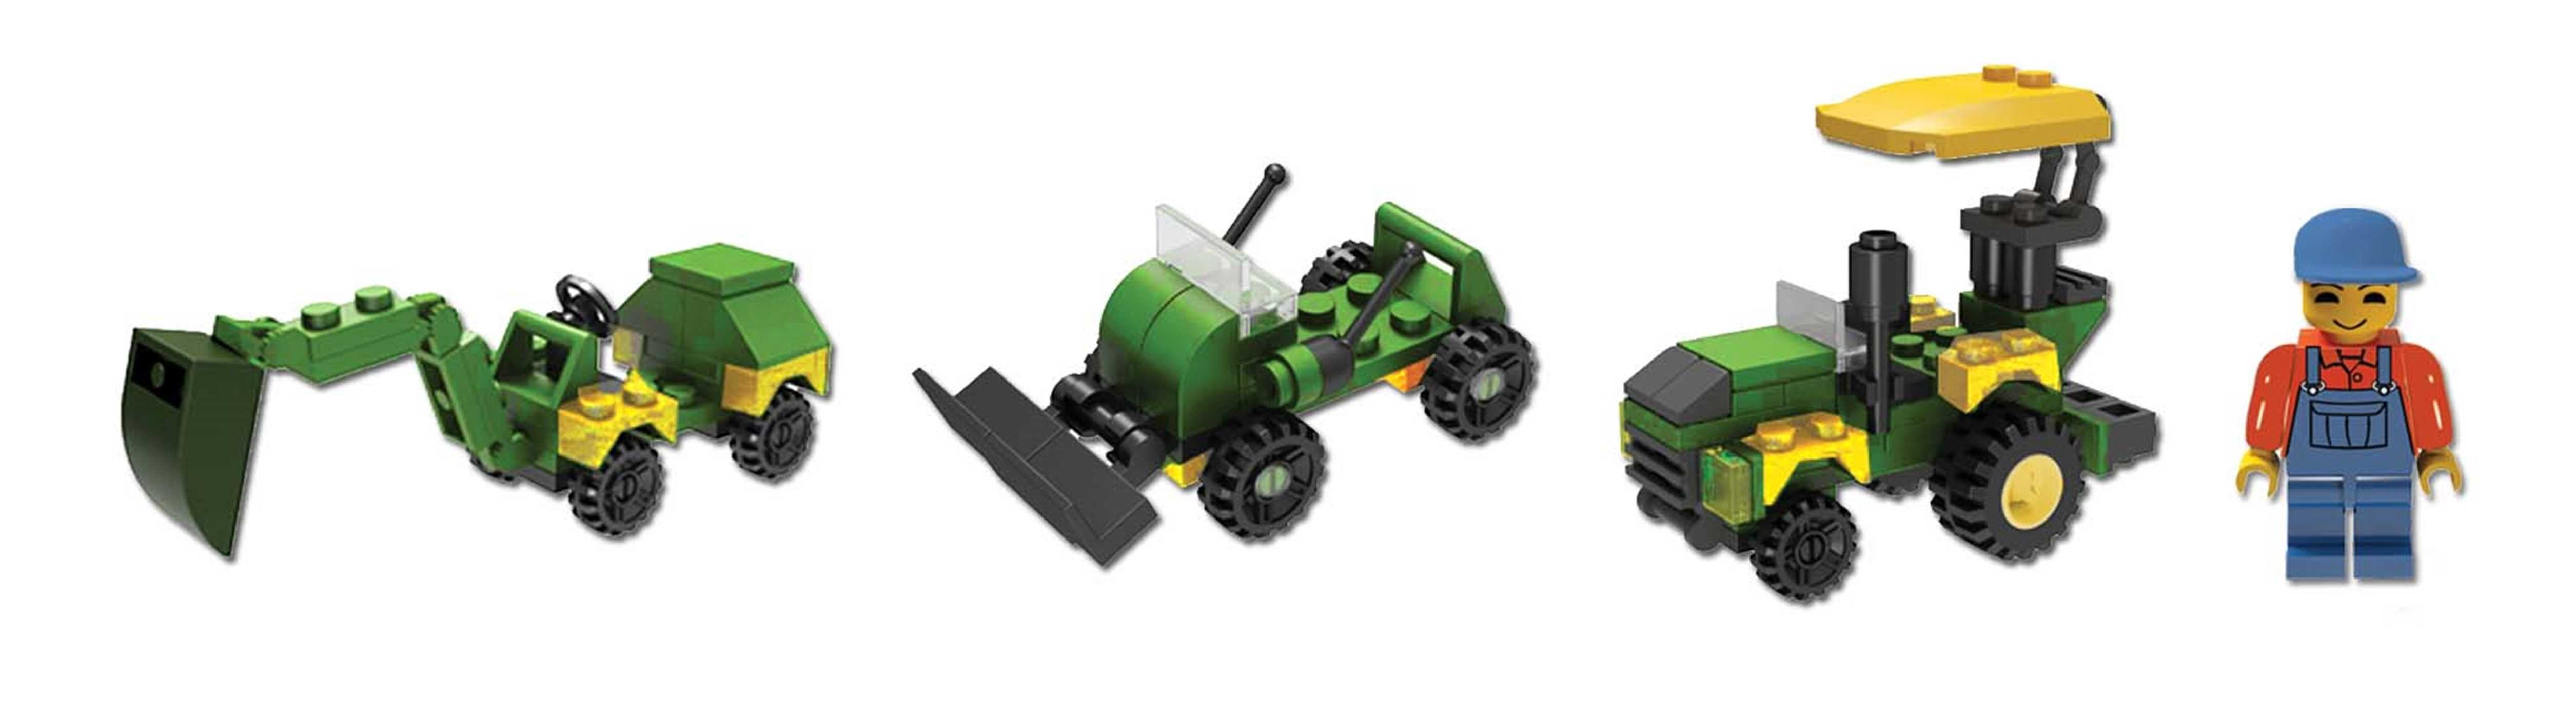 Build-my-own-farm-machines-9780794432539.in01